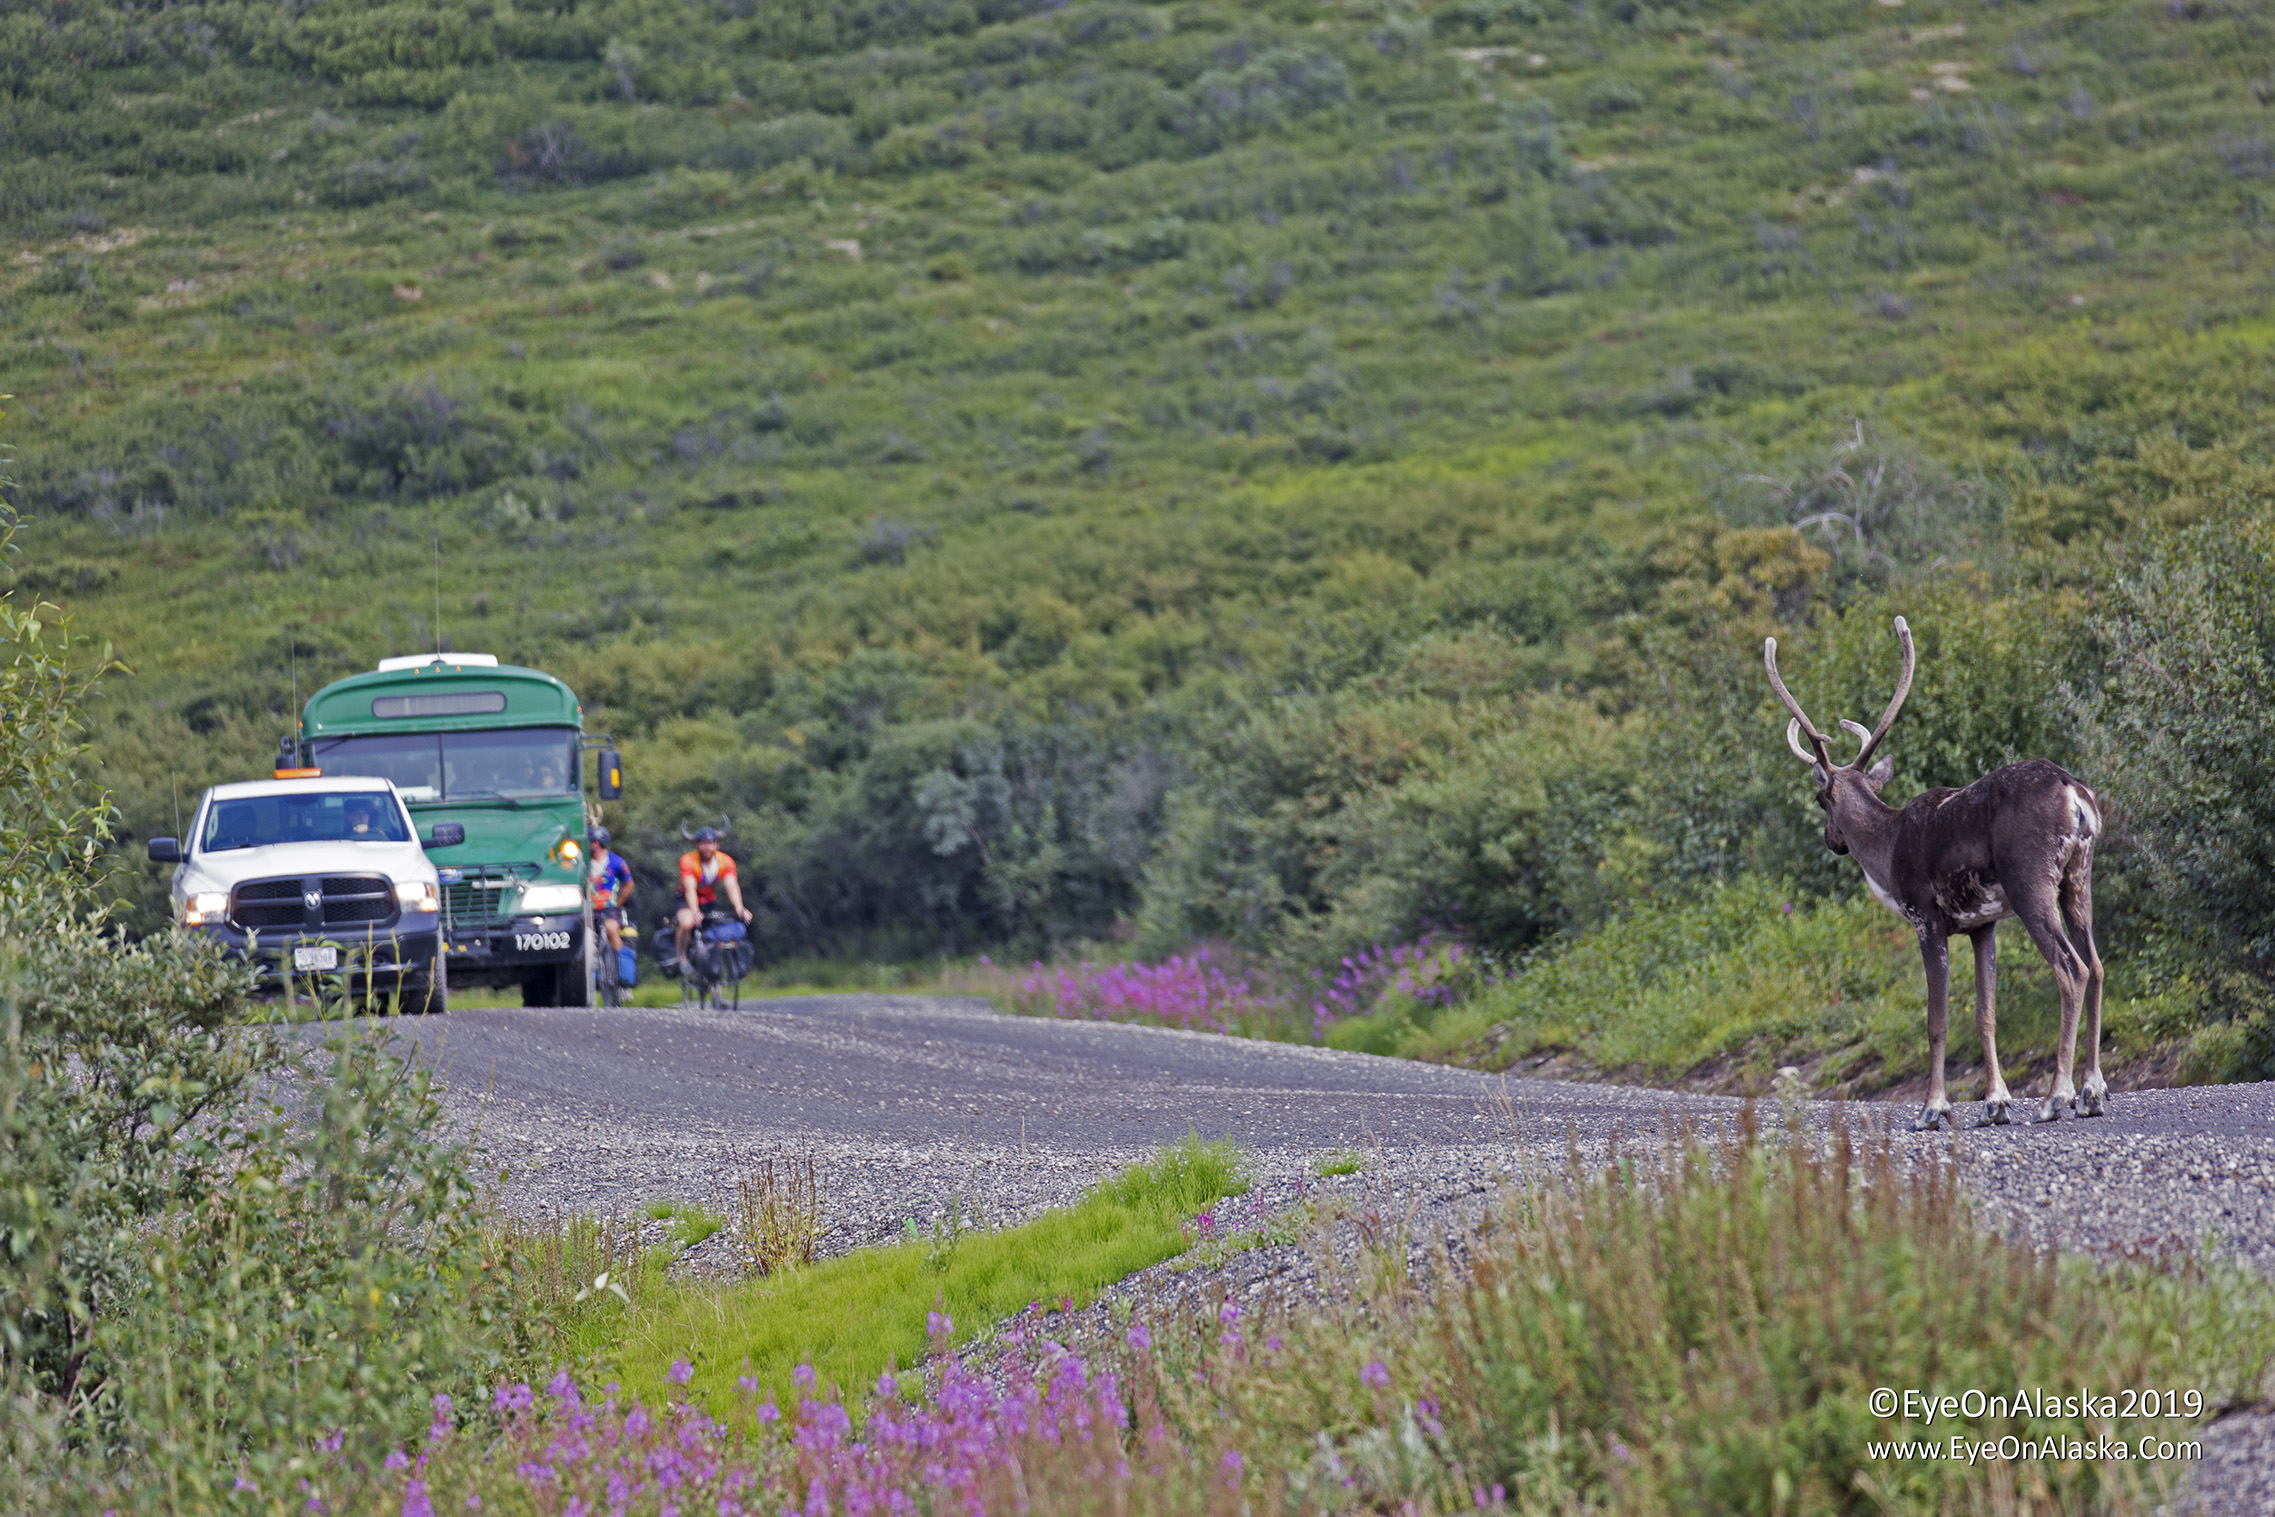 Driving into the Teklanika campground on the Park Road on Thursday afternoon to begin our trip we came around a corner to find this stand-off. Crazy bikers wearing horns on their helmets which I'm not sure is a great idea in bear country. That's why the drivers call us meals-on-wheels ;)